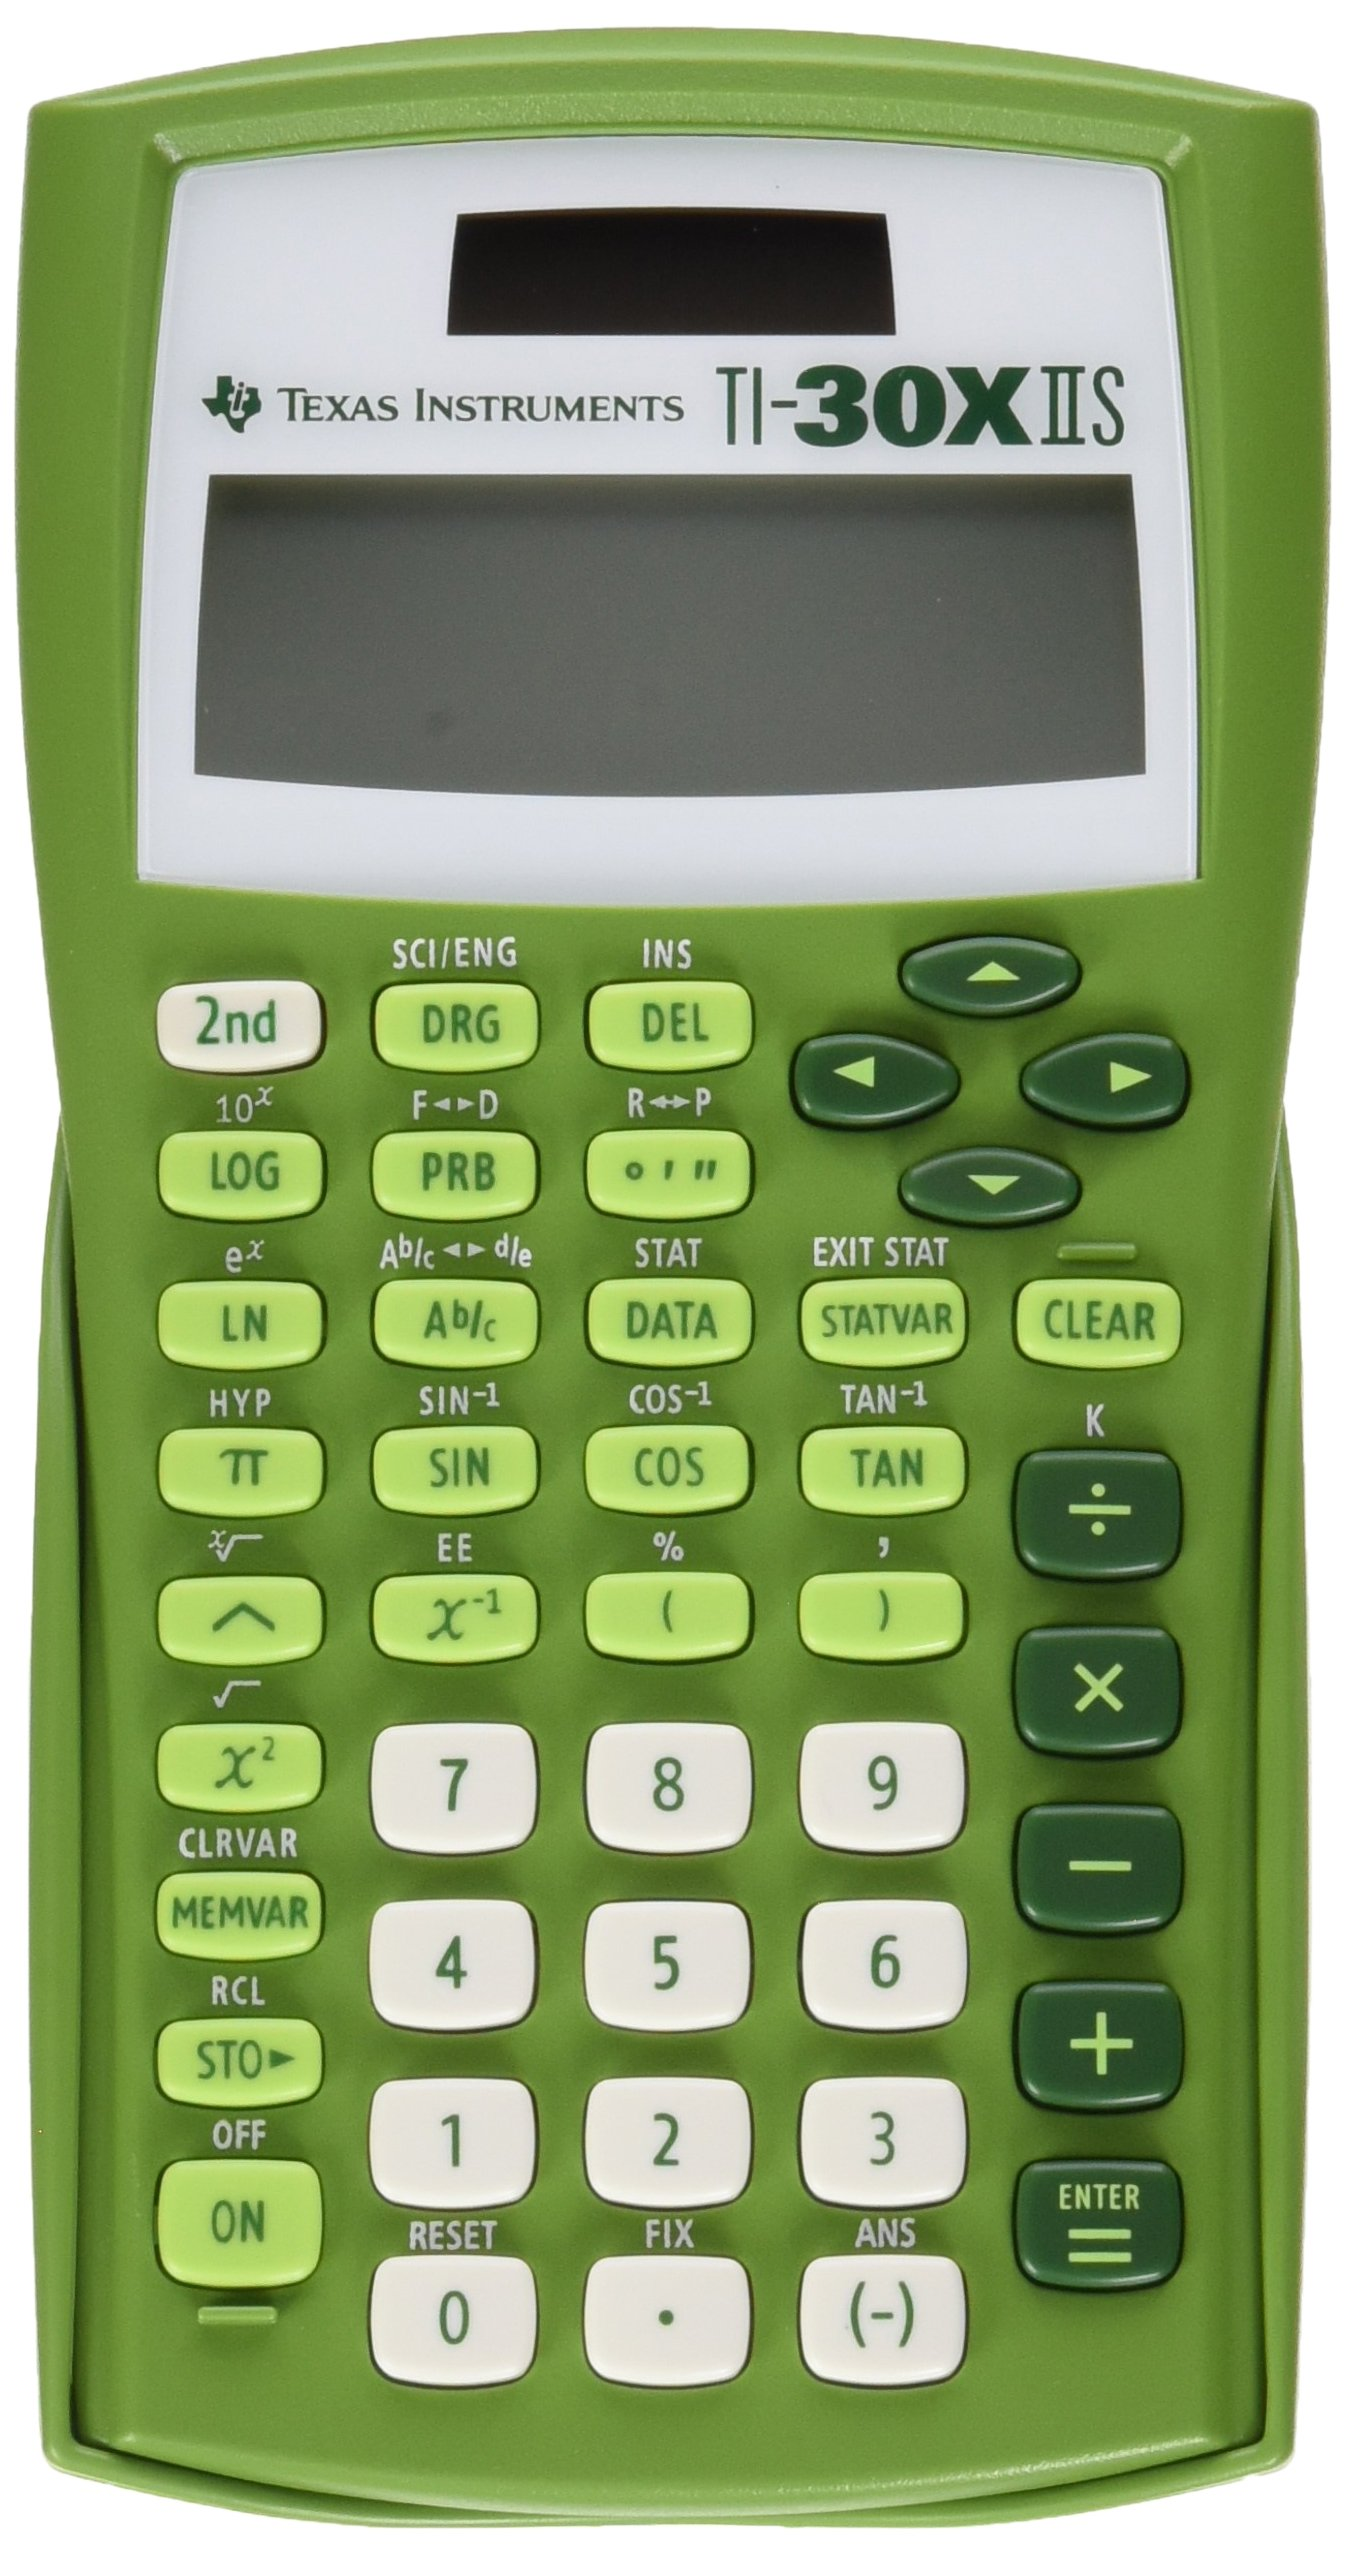 Texas Instruments TI-30X IIS 2-Line Scientific Calculator, Lime Green